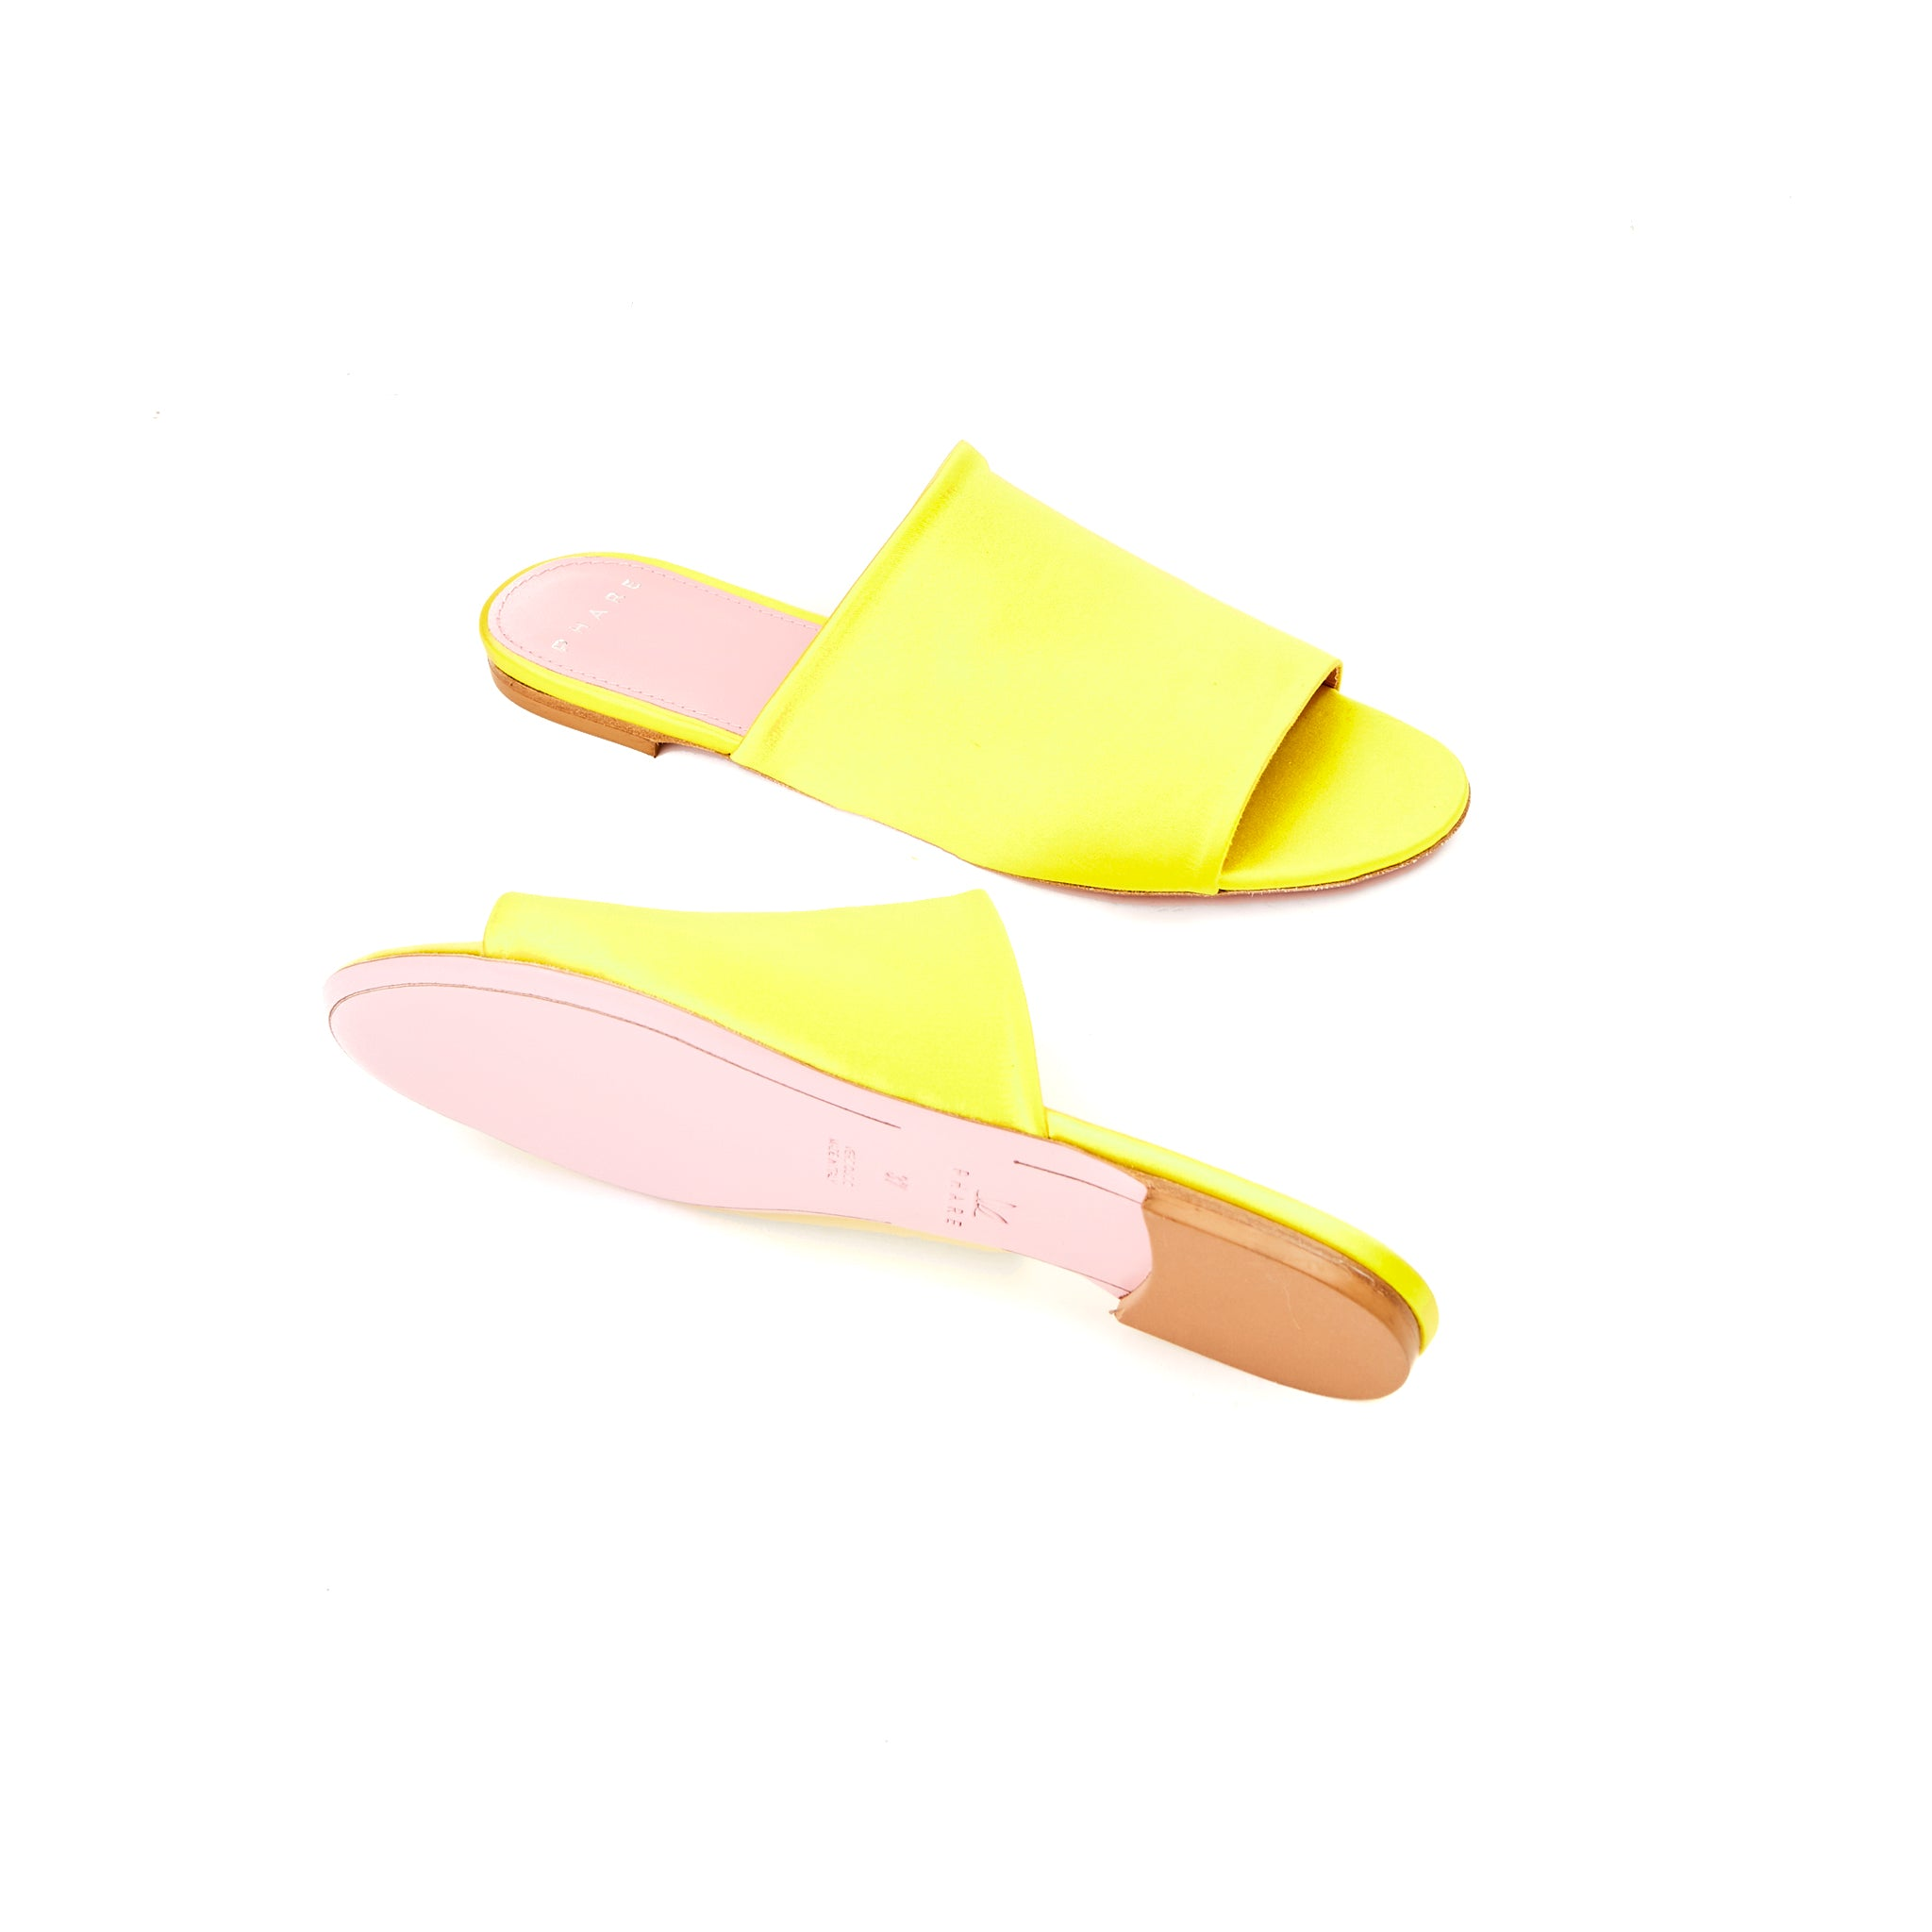 Phare seta slide in yellow silk satin sole view